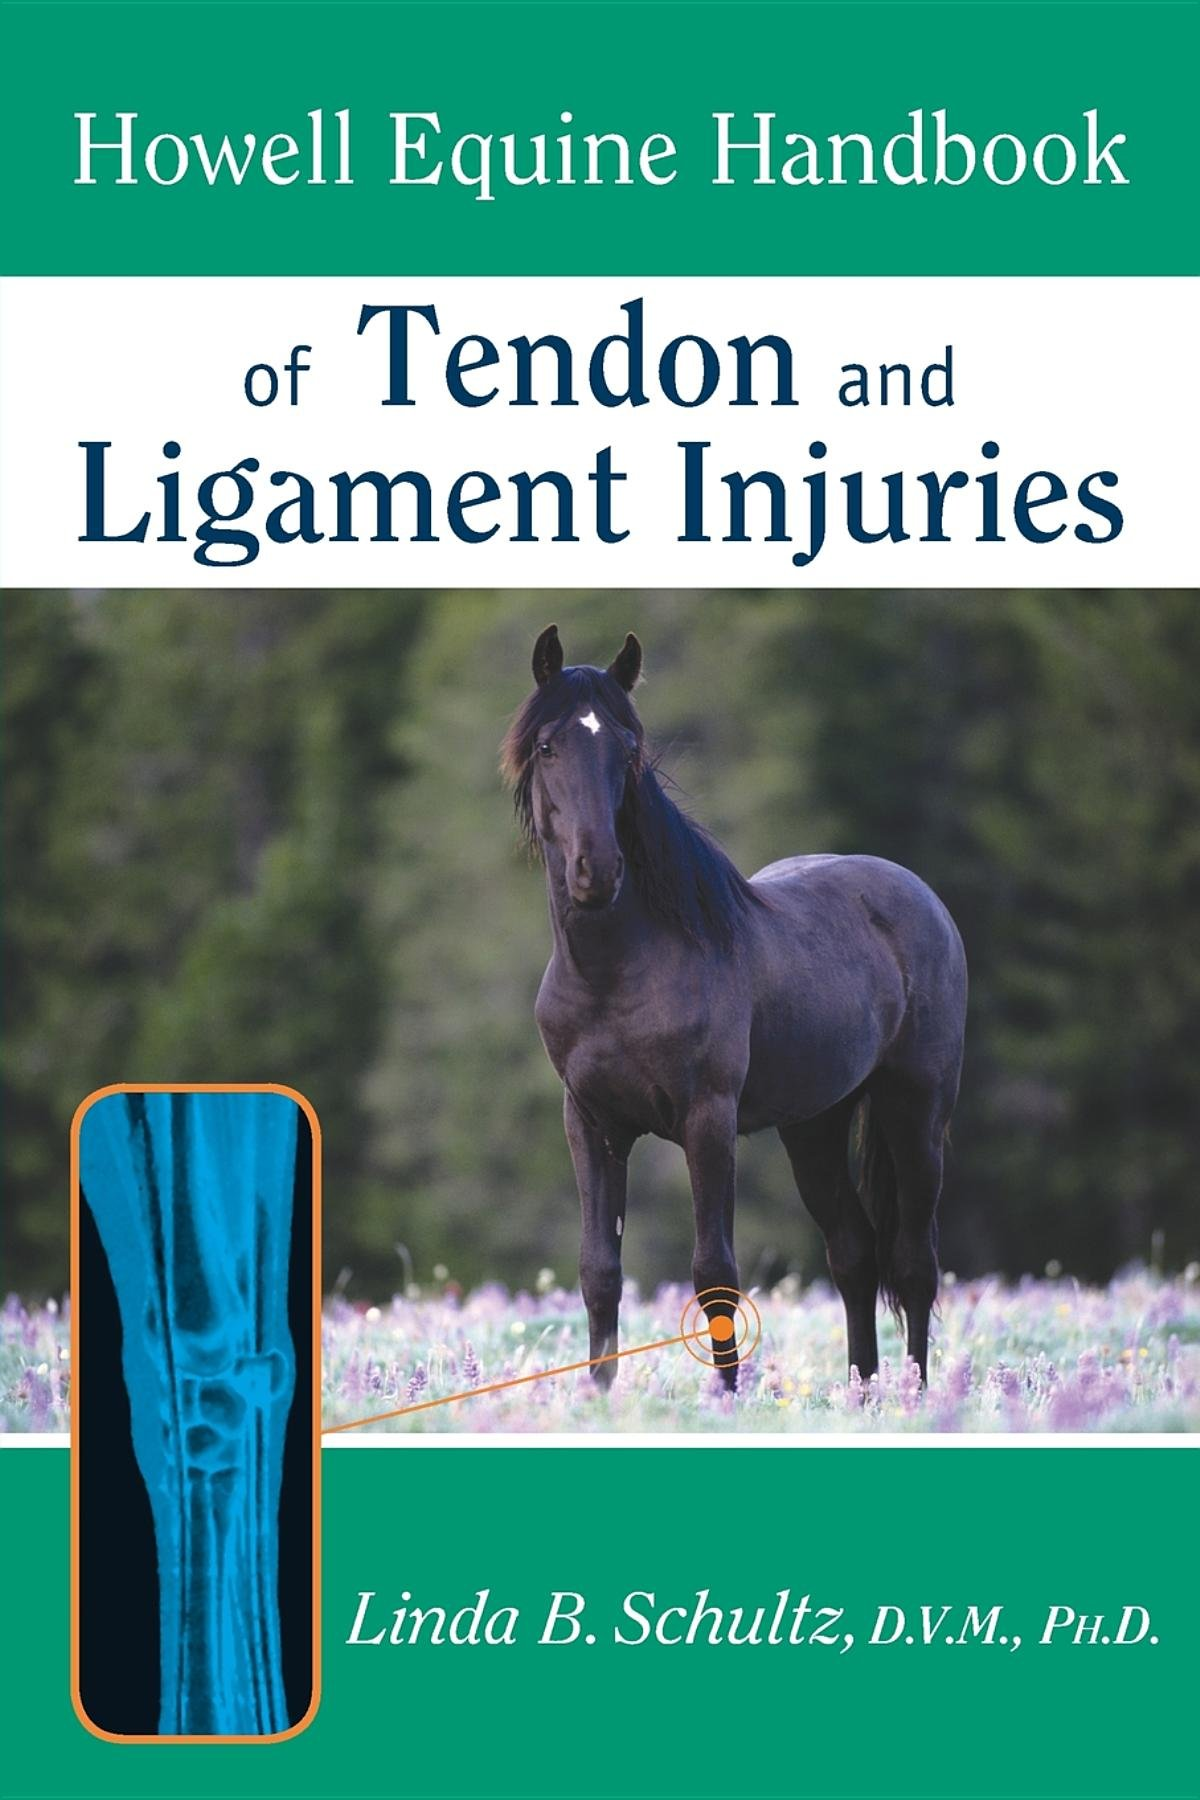 Howell Equine Handbook Of Tendon And Ligament Injuries Howell Equestrian Library Paperback Schultz Dvm Ph D Linda B 0785555880399 Amazon Com Books